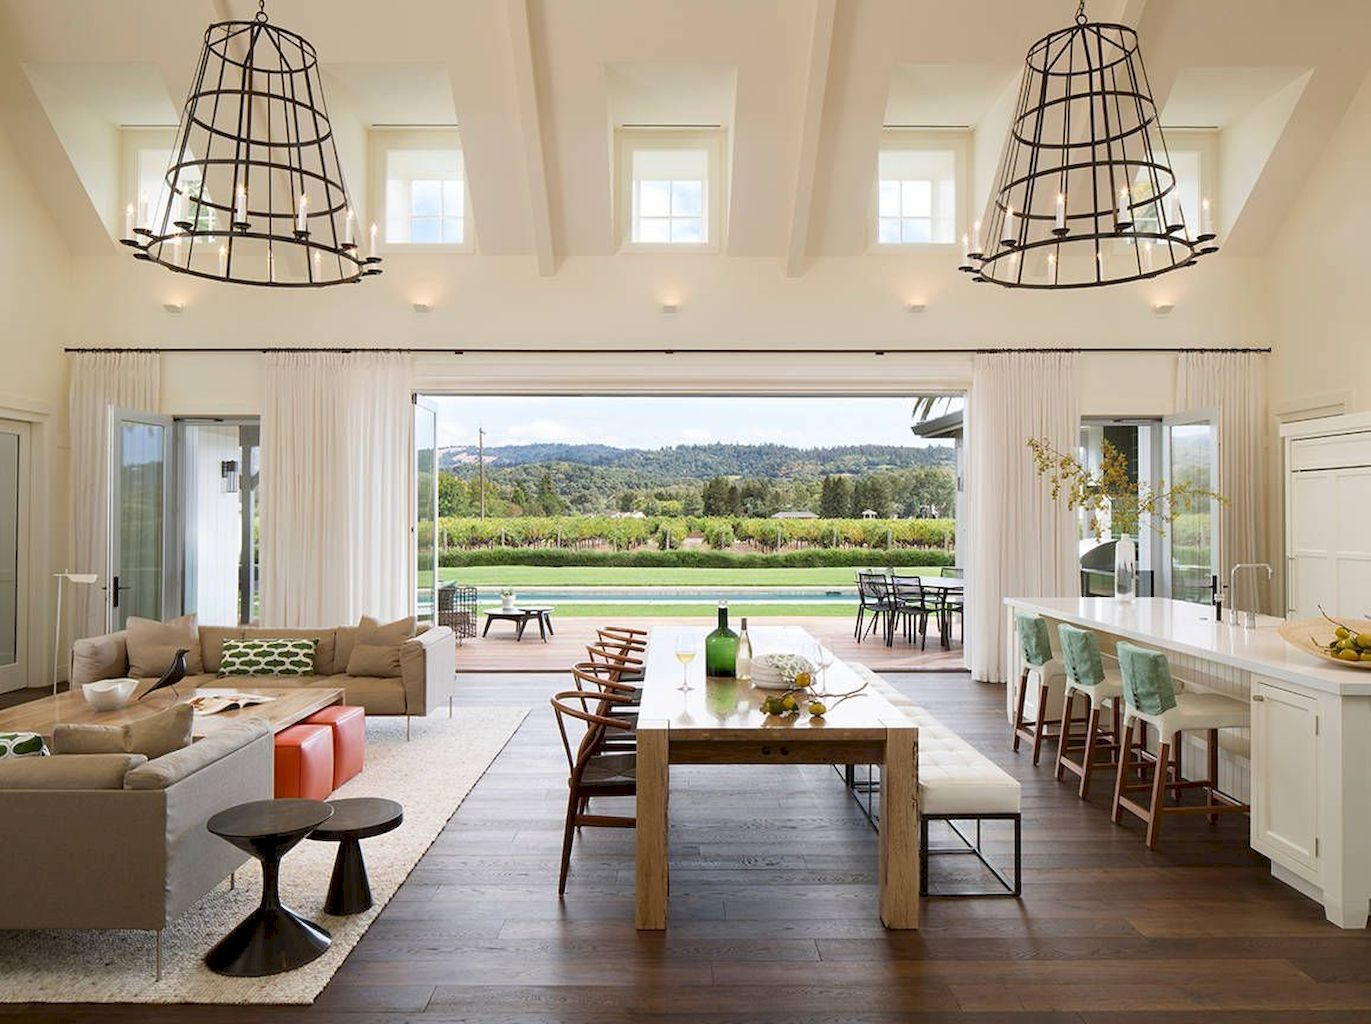 36 Stylish Open Dining Room And Kitchen Designs Ideas Diningroomlayout Dini Open Concept Kitchen Living Room Open Living Room Design Open Concept Living Room